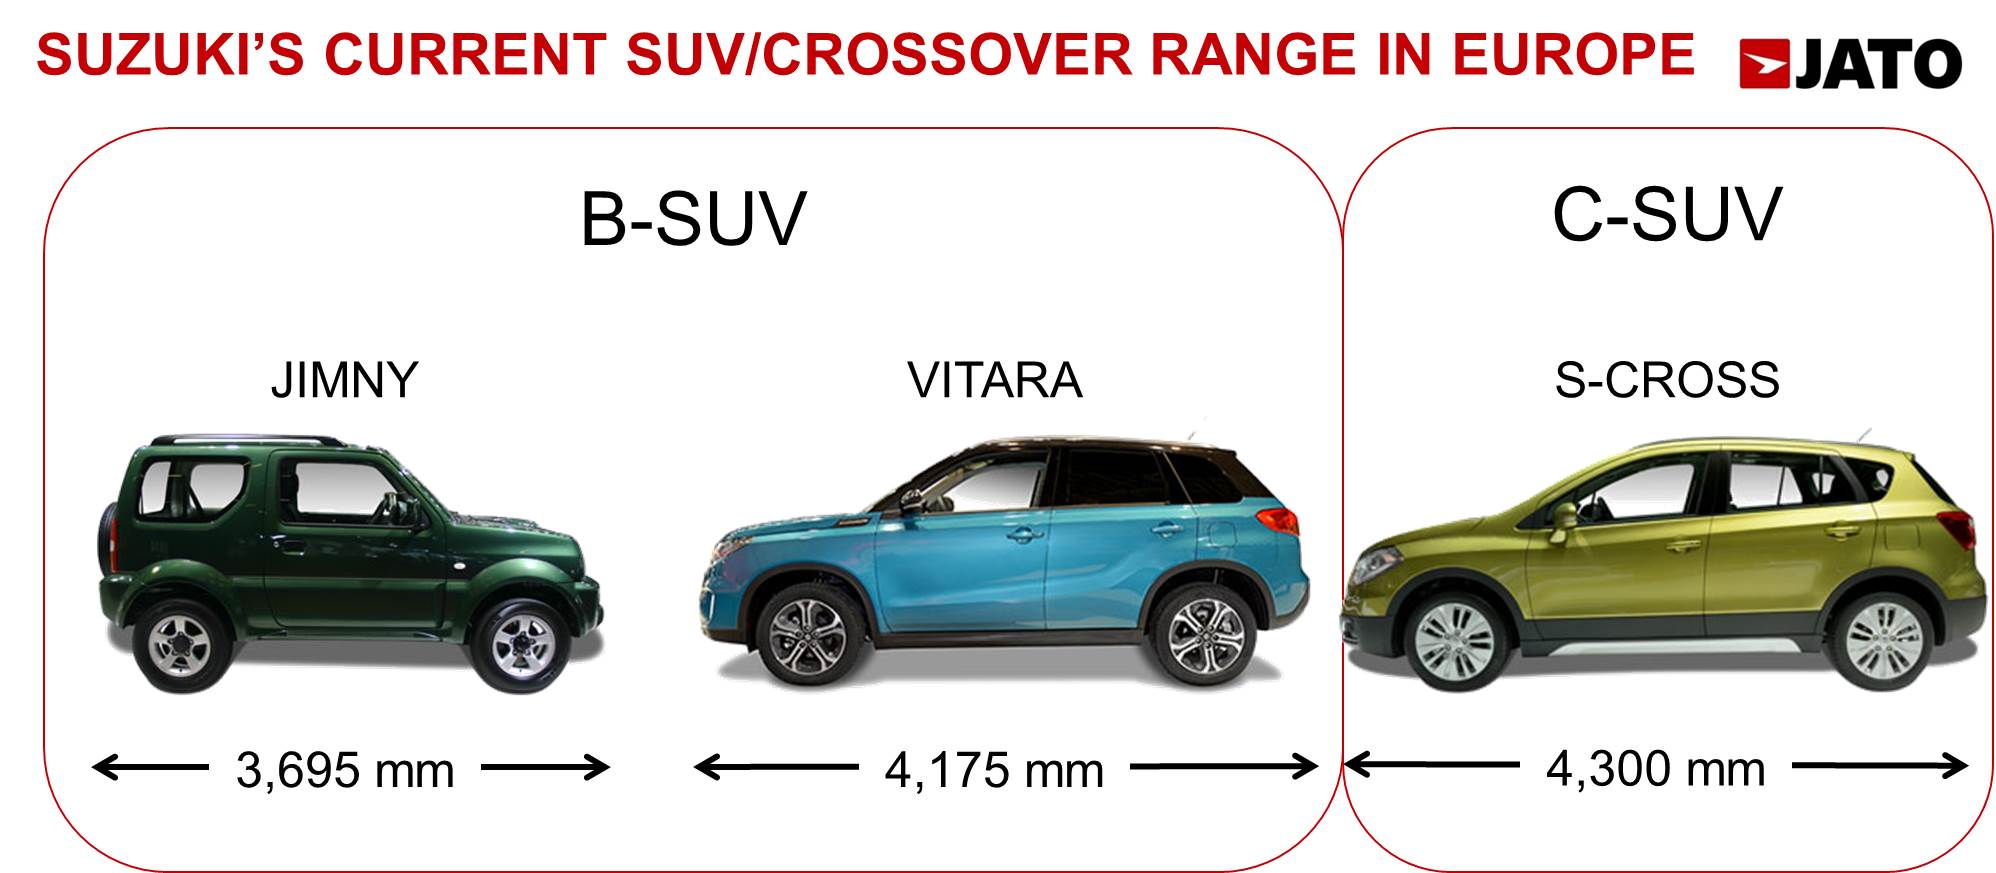 Even If Its Length 3 99 M Clearly Places The Baleno In B Segment This Car Is Positioned Above Swift Which Also Considered